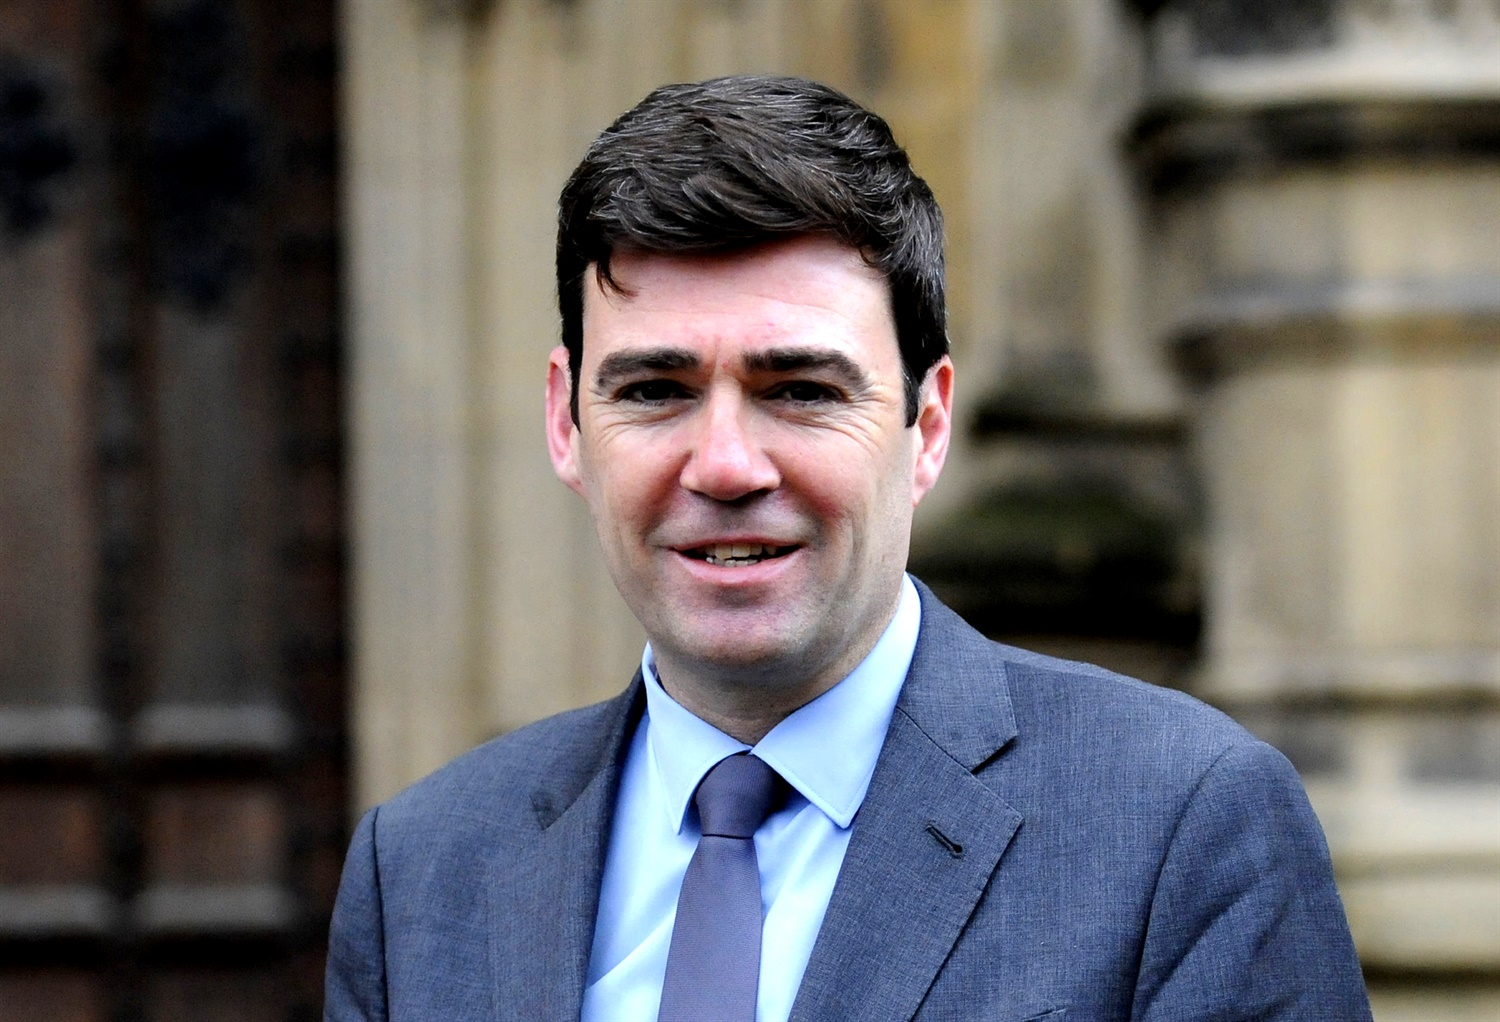 Andy Burnham c. Kirsty O'Connor PA WirePA Images edit